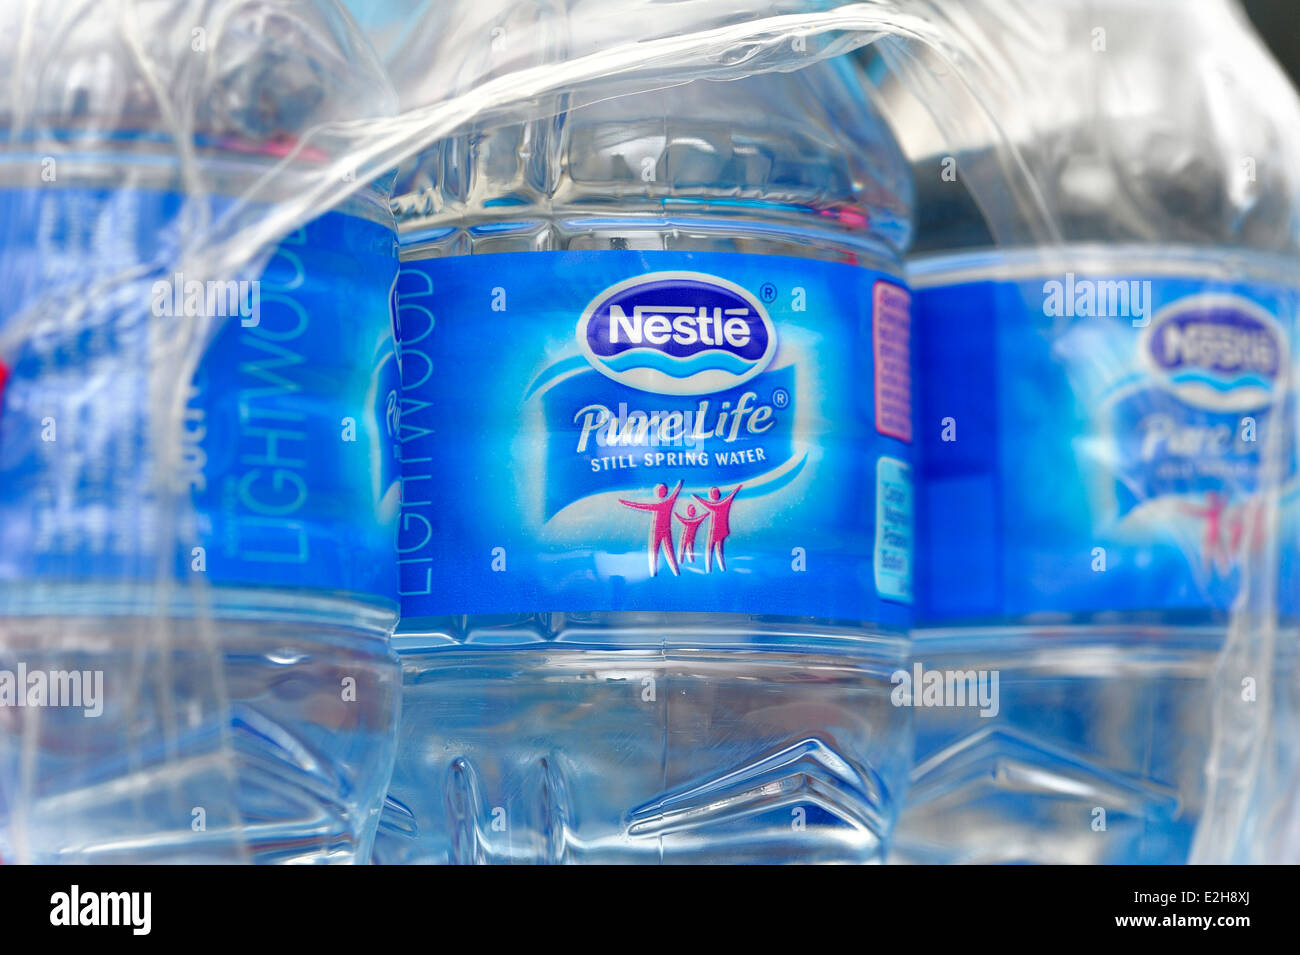 Pure water label stock photos pure water label stock images alamy a case of nestle pure life spring water shrink wrapped stock image biocorpaavc